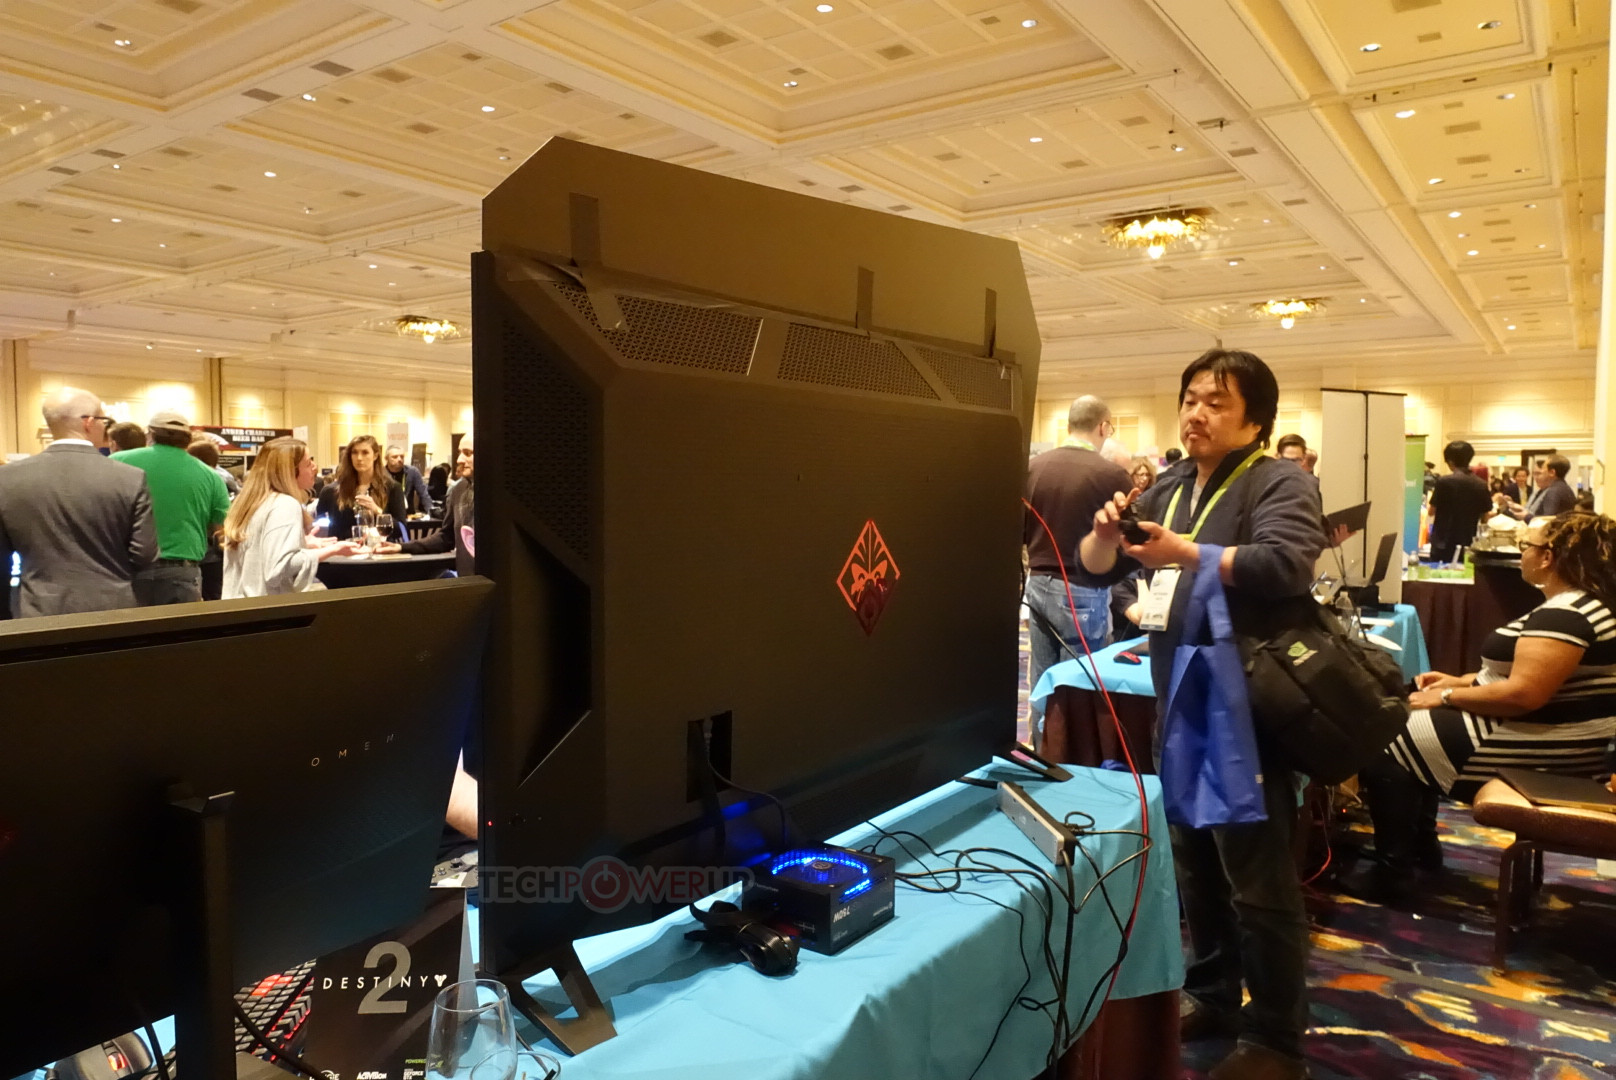 HP Omen X 65 Big Format Gaming Display (BFGD) Pictured | TechPowerUp